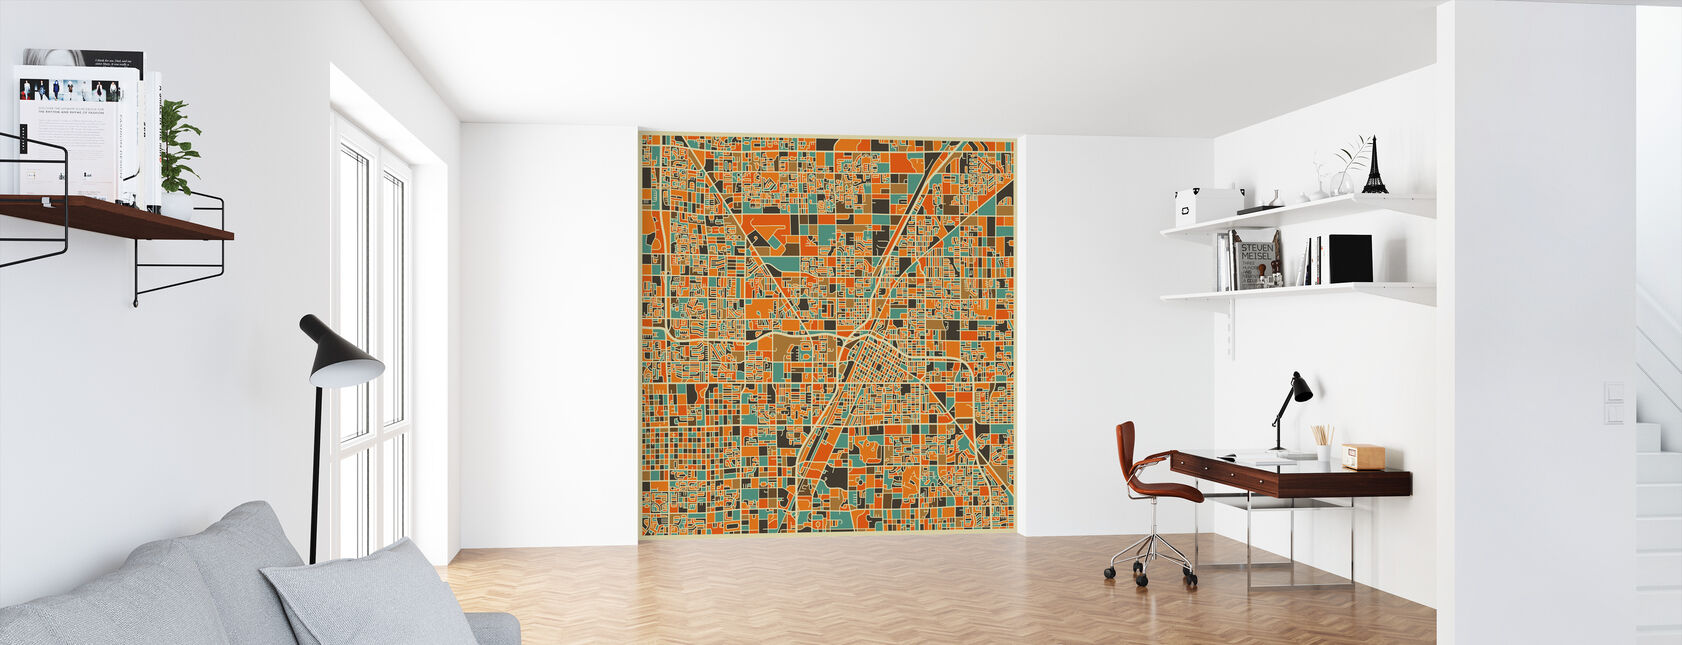 Multicolor Map - Las Vegas - Wallpaper - Office